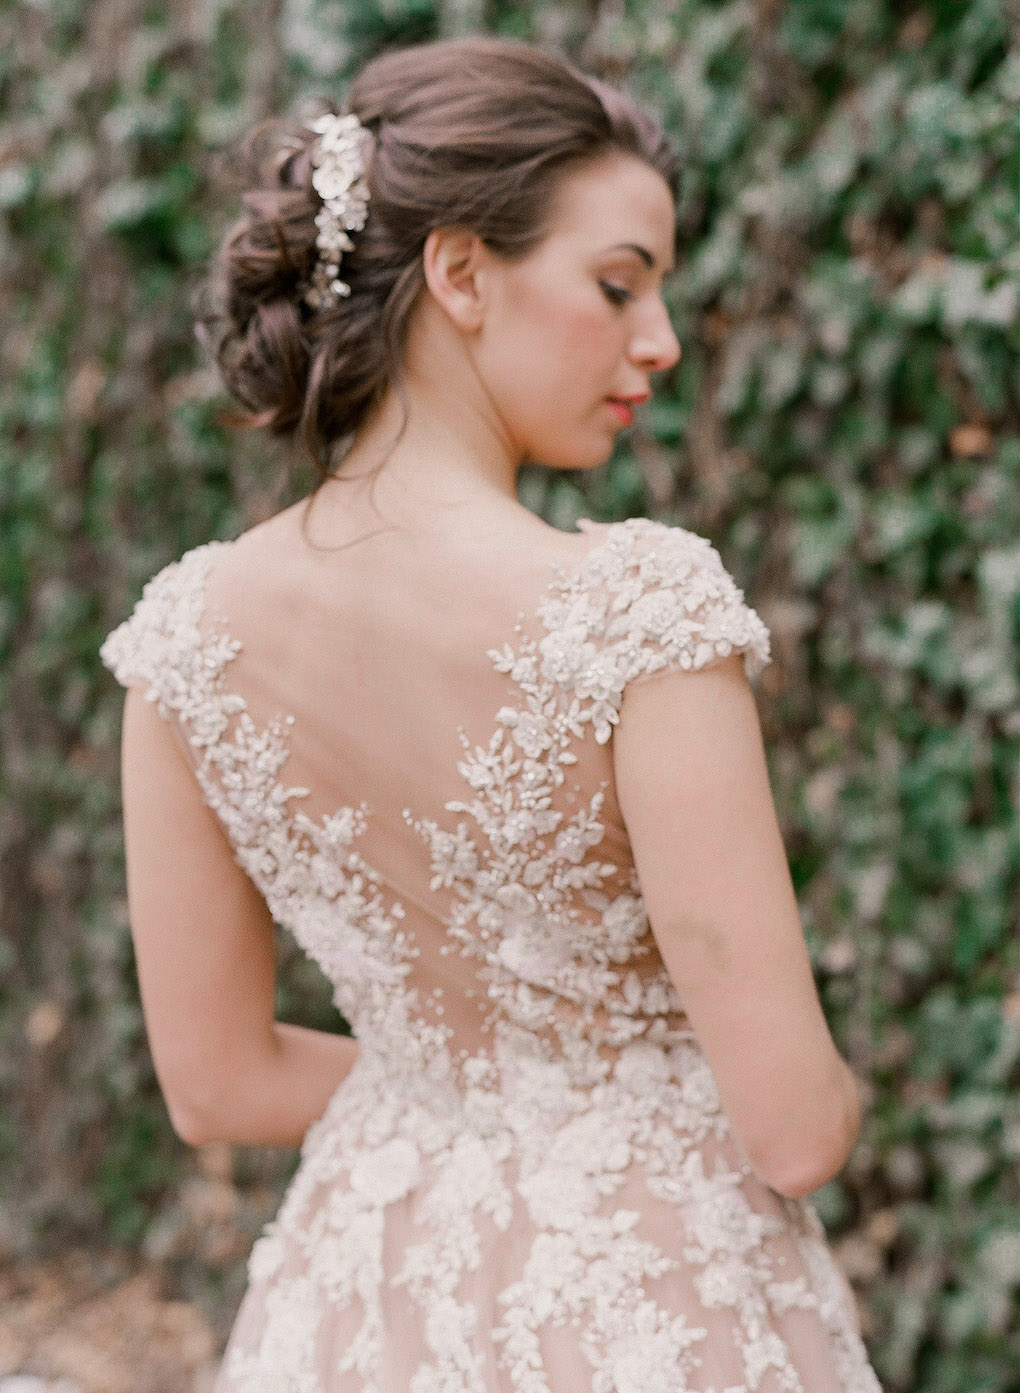 Wedding dress with matching hair piece: Soft and Subtle Palettes of Spring Blossoms | Editorial Shoot at The Renaissance Pittsburgh by Exhale Events. See more inspiration at exhale-events.com!